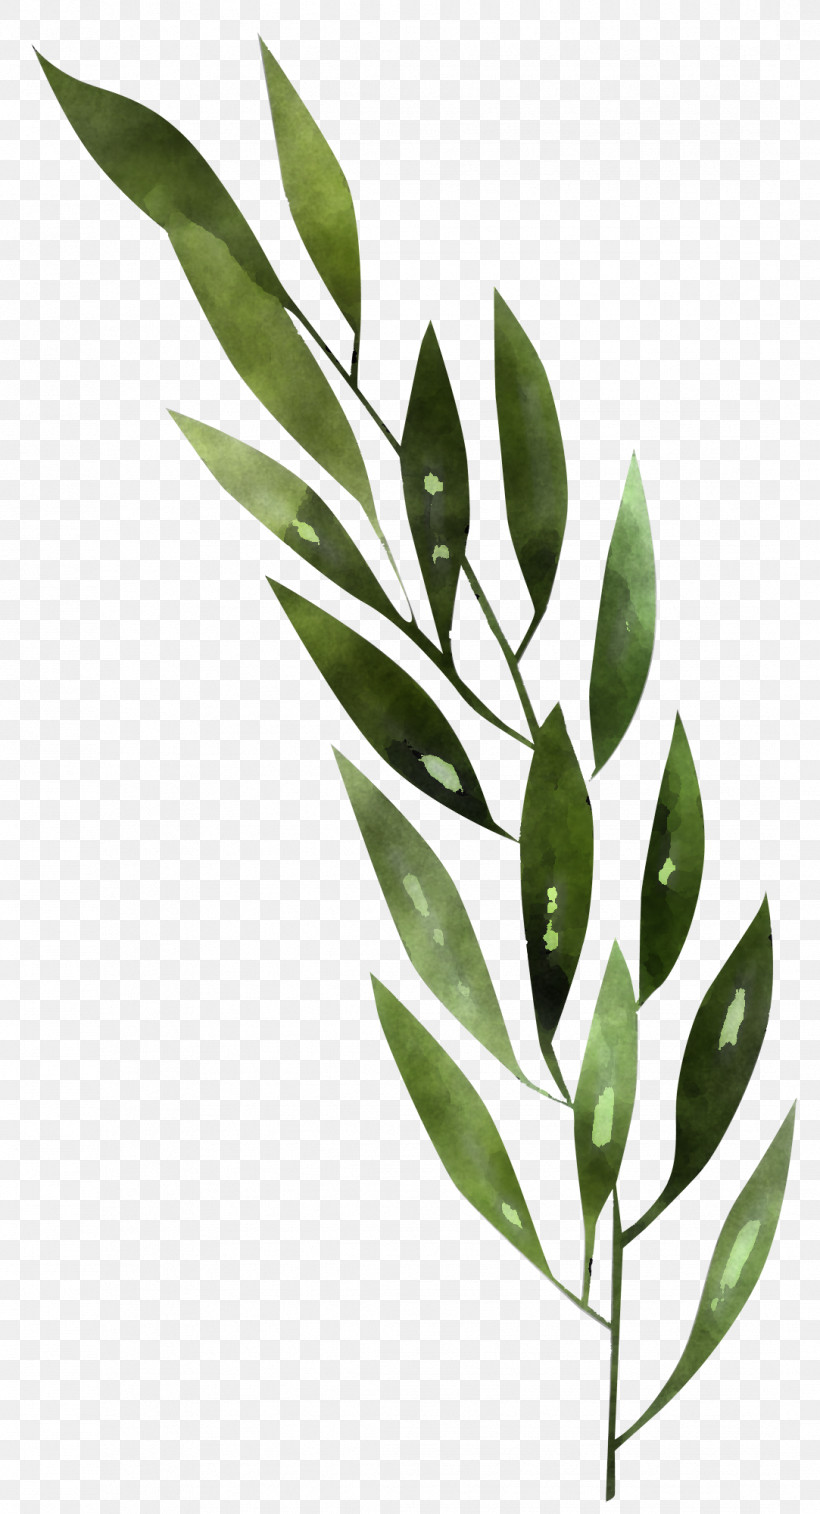 Leaf Plant Flower Tree Branch, PNG, 1083x2000px, Leaf, Bay Leaf, Branch, Curry Tree, Eucalyptus Download Free